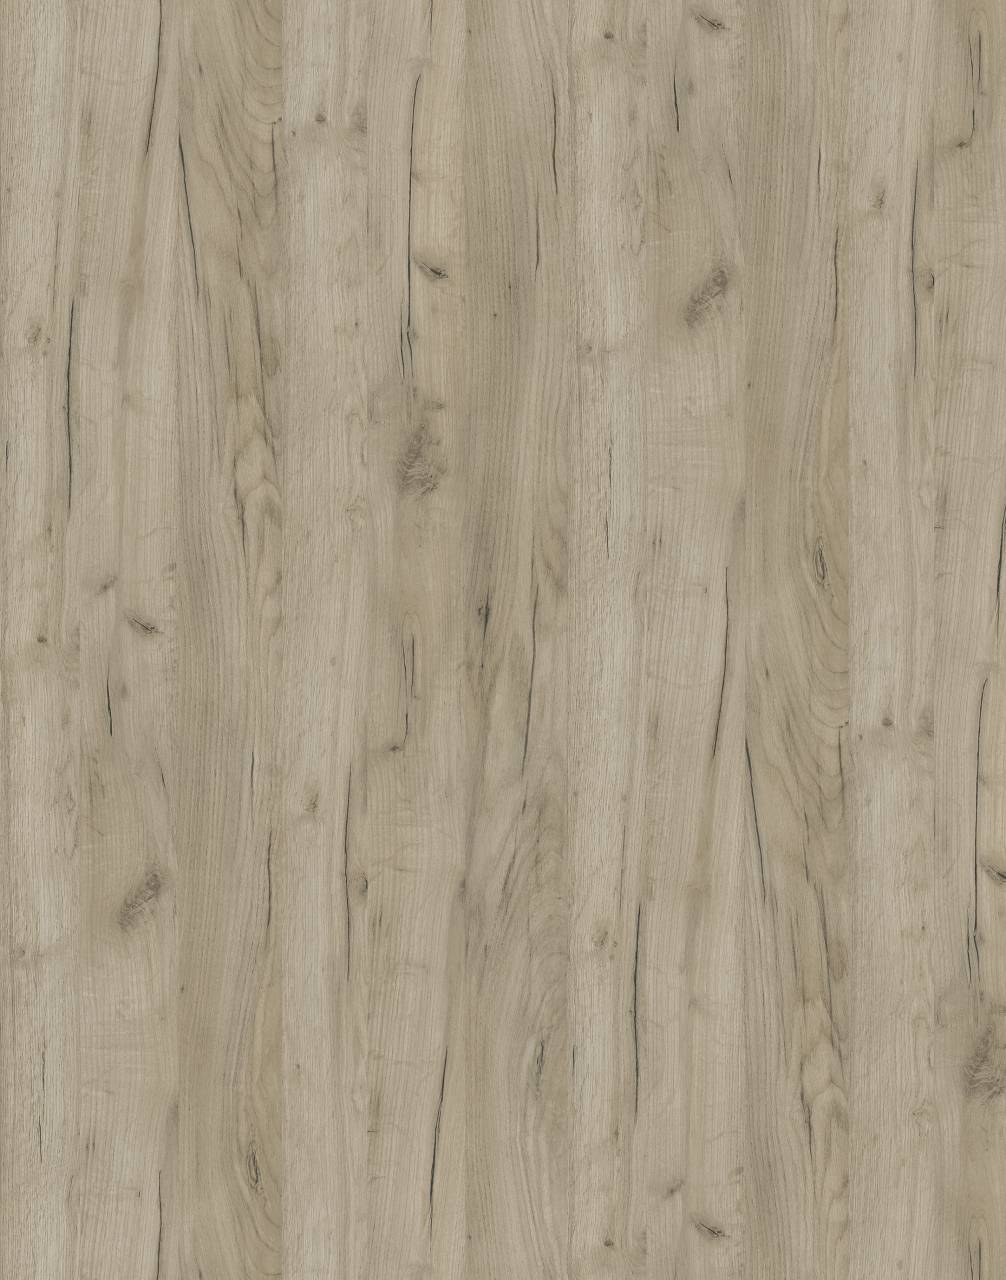 K002 Grey Craft Oak (MF PB sample)